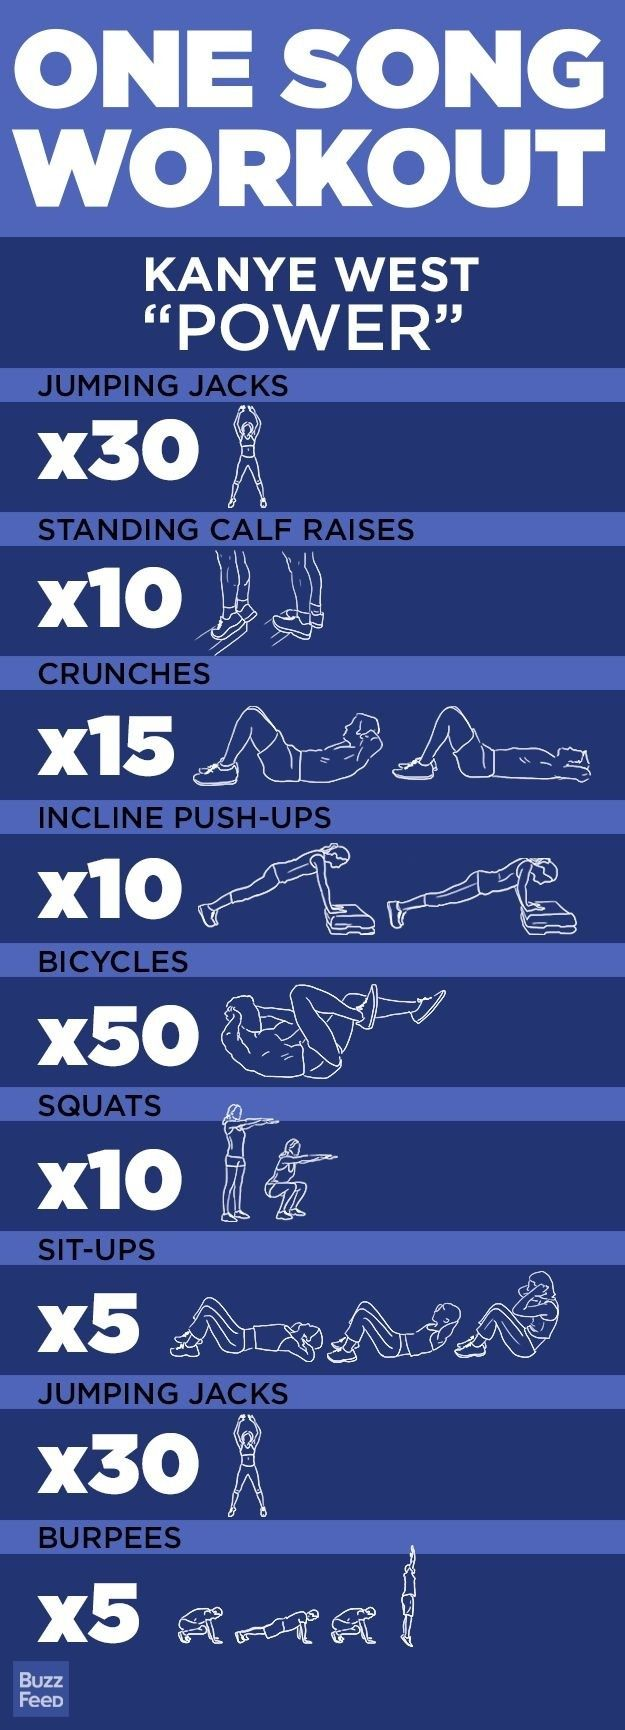 One Song Workout! Love It!